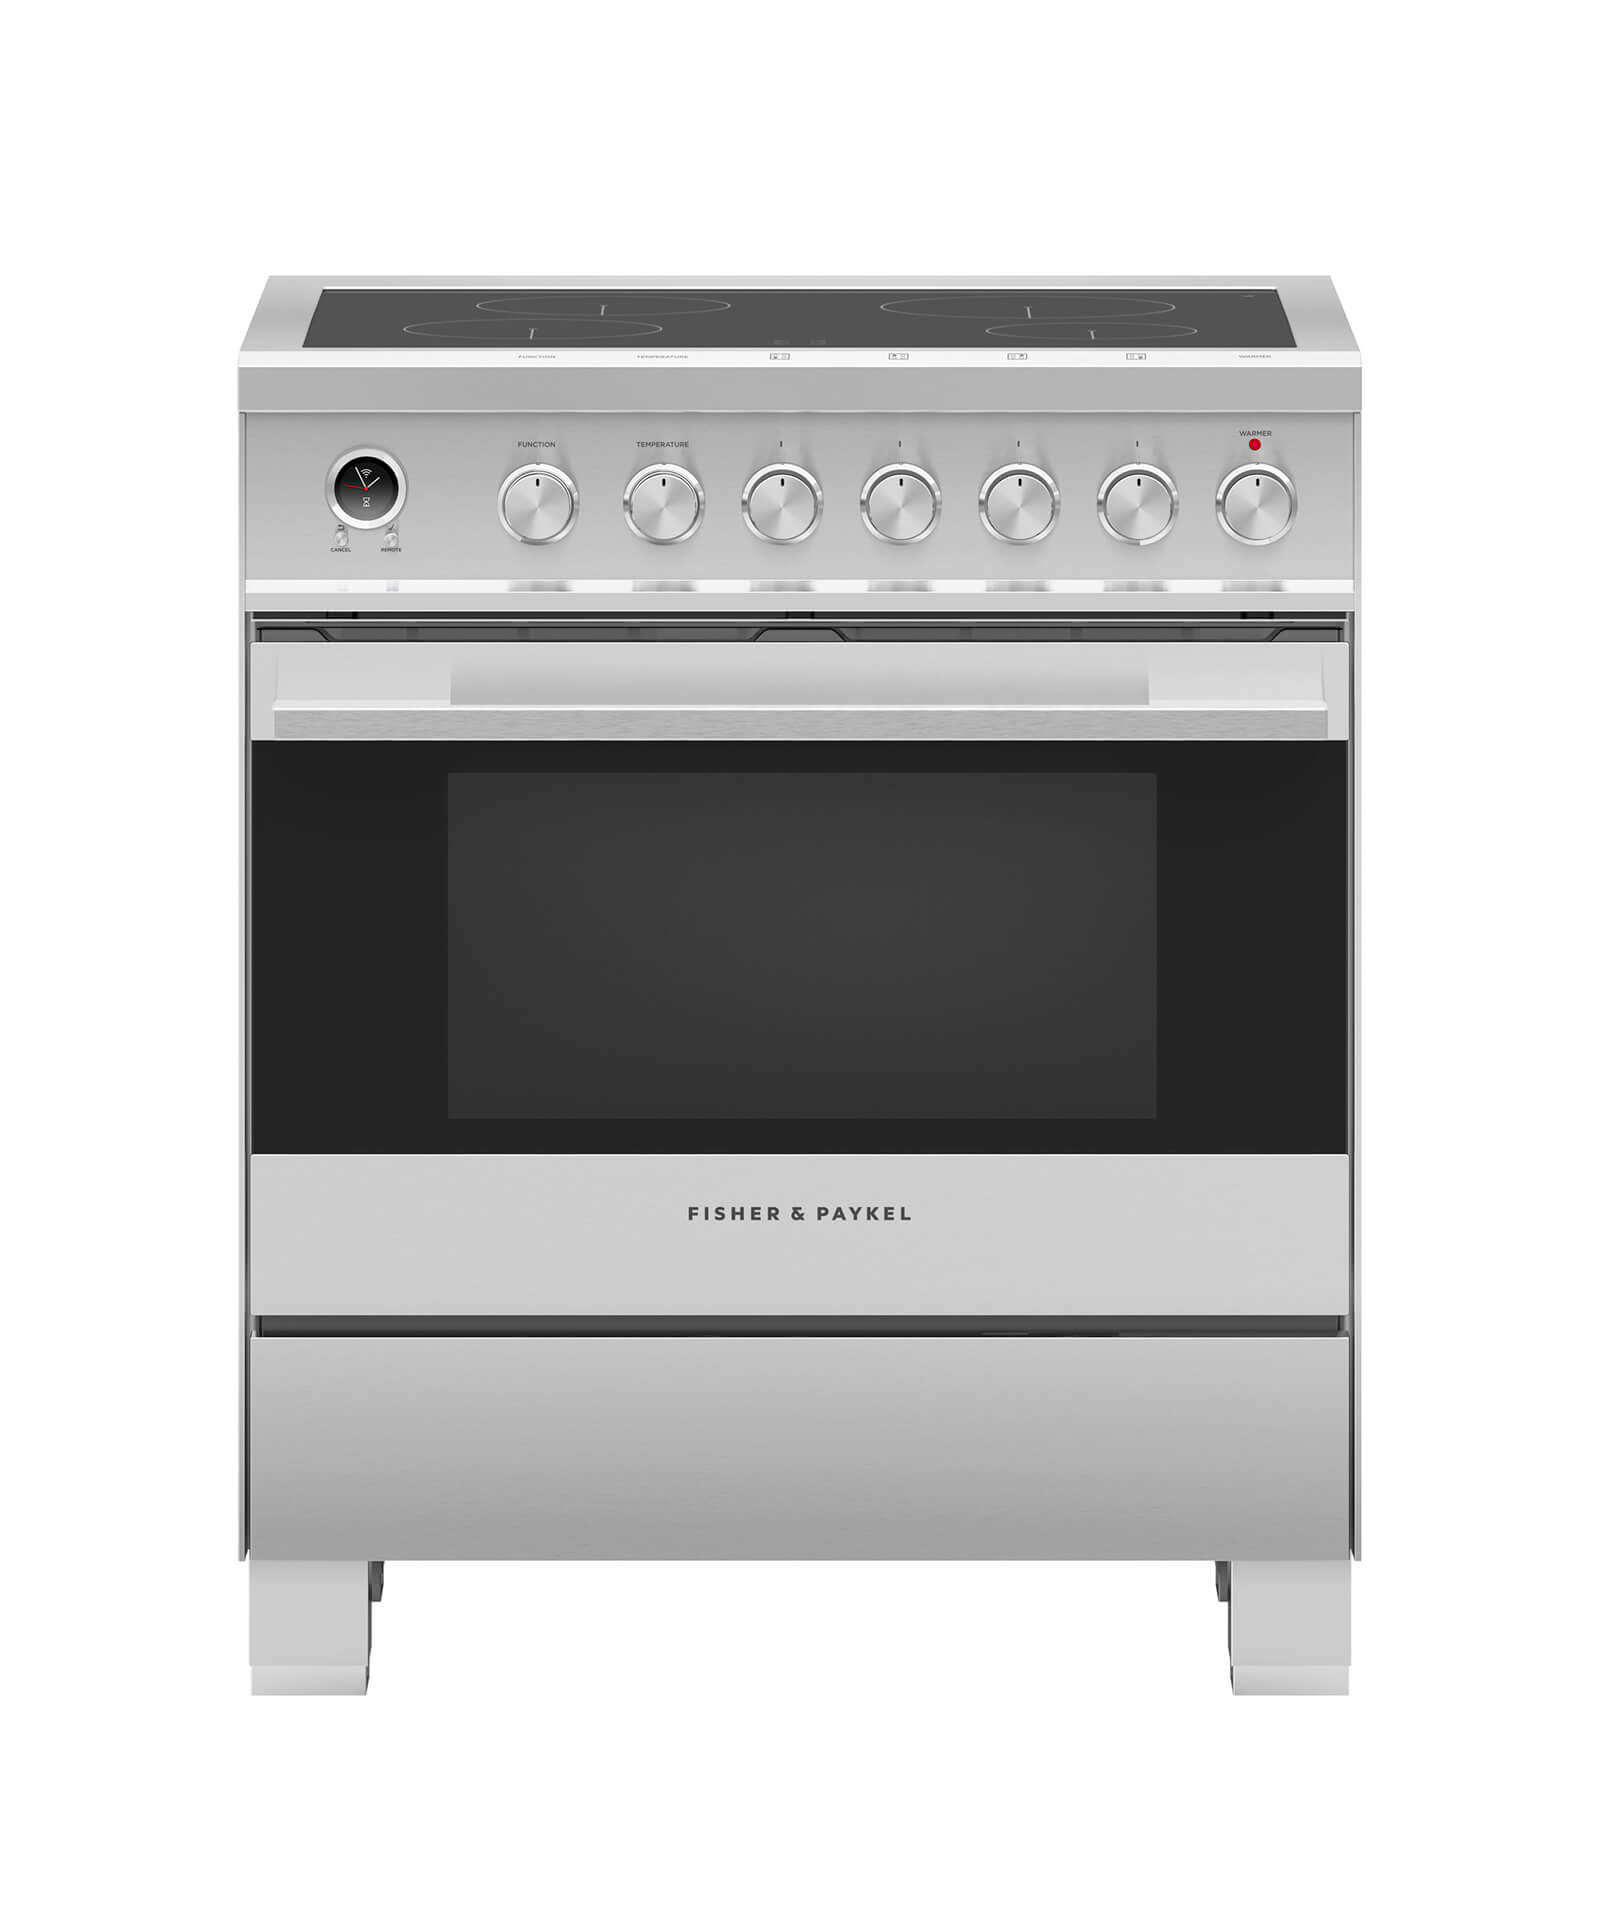 """Model: OR30SDI6X1 